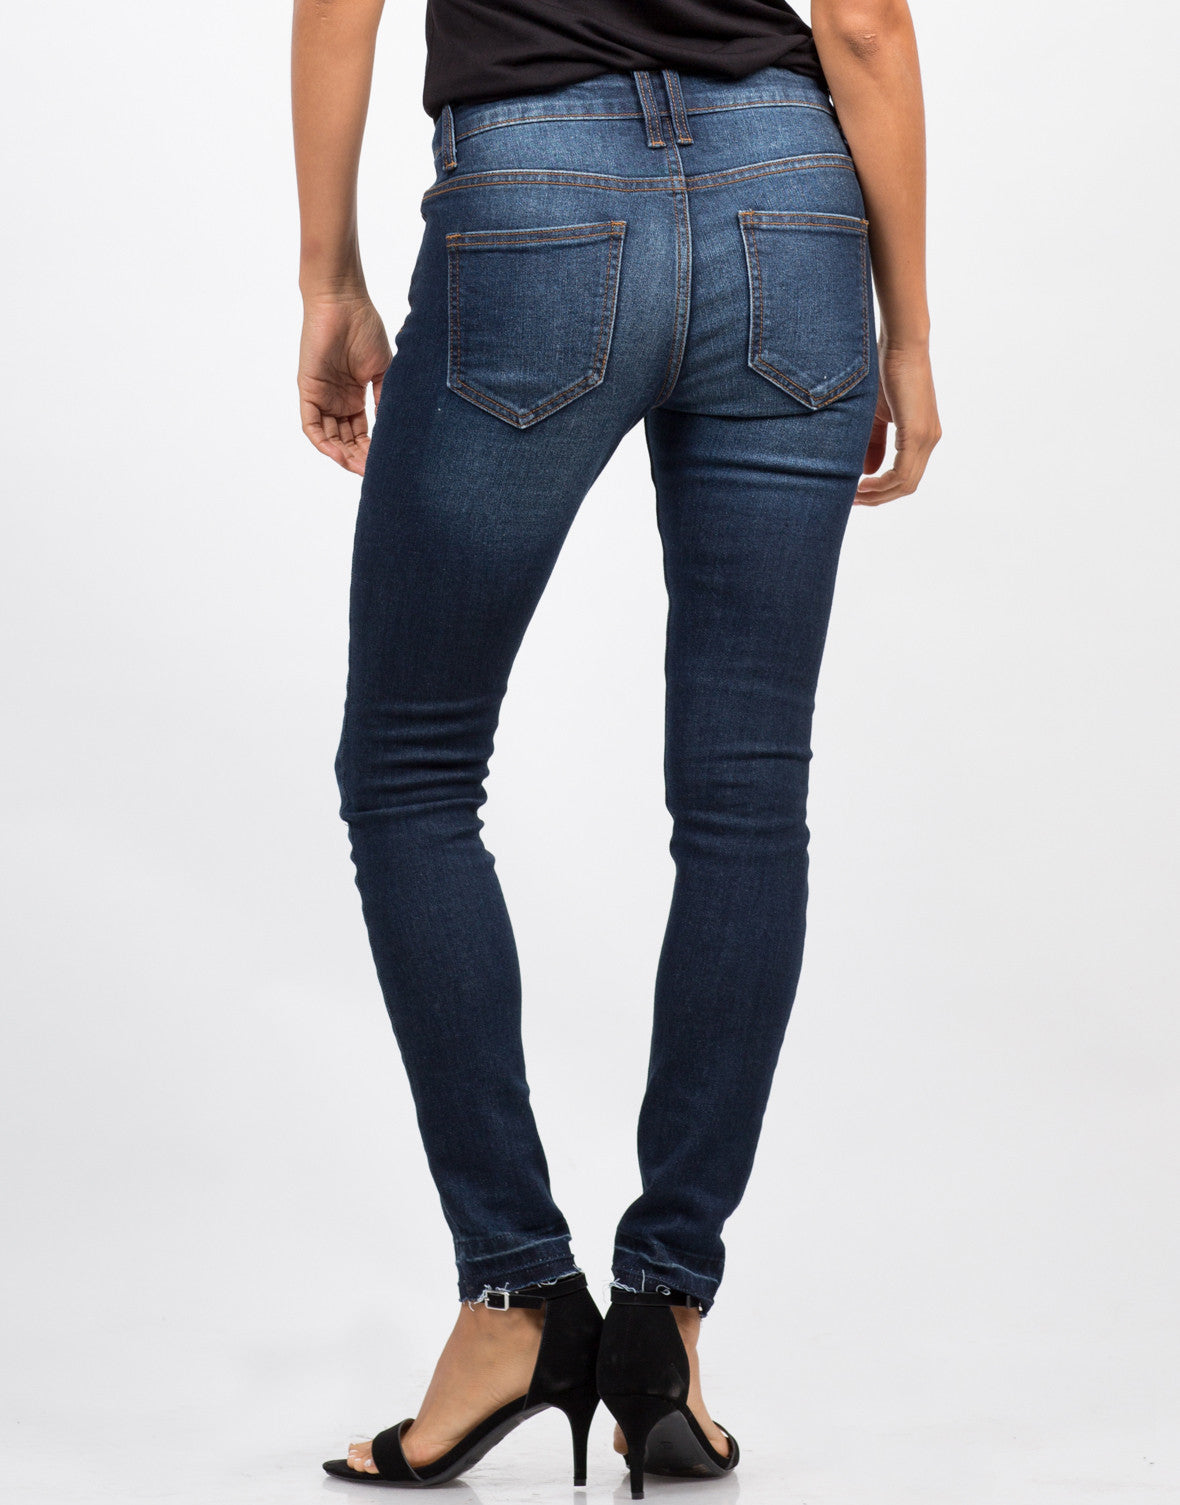 Back View of Mid-Rise Released Hem Jeans